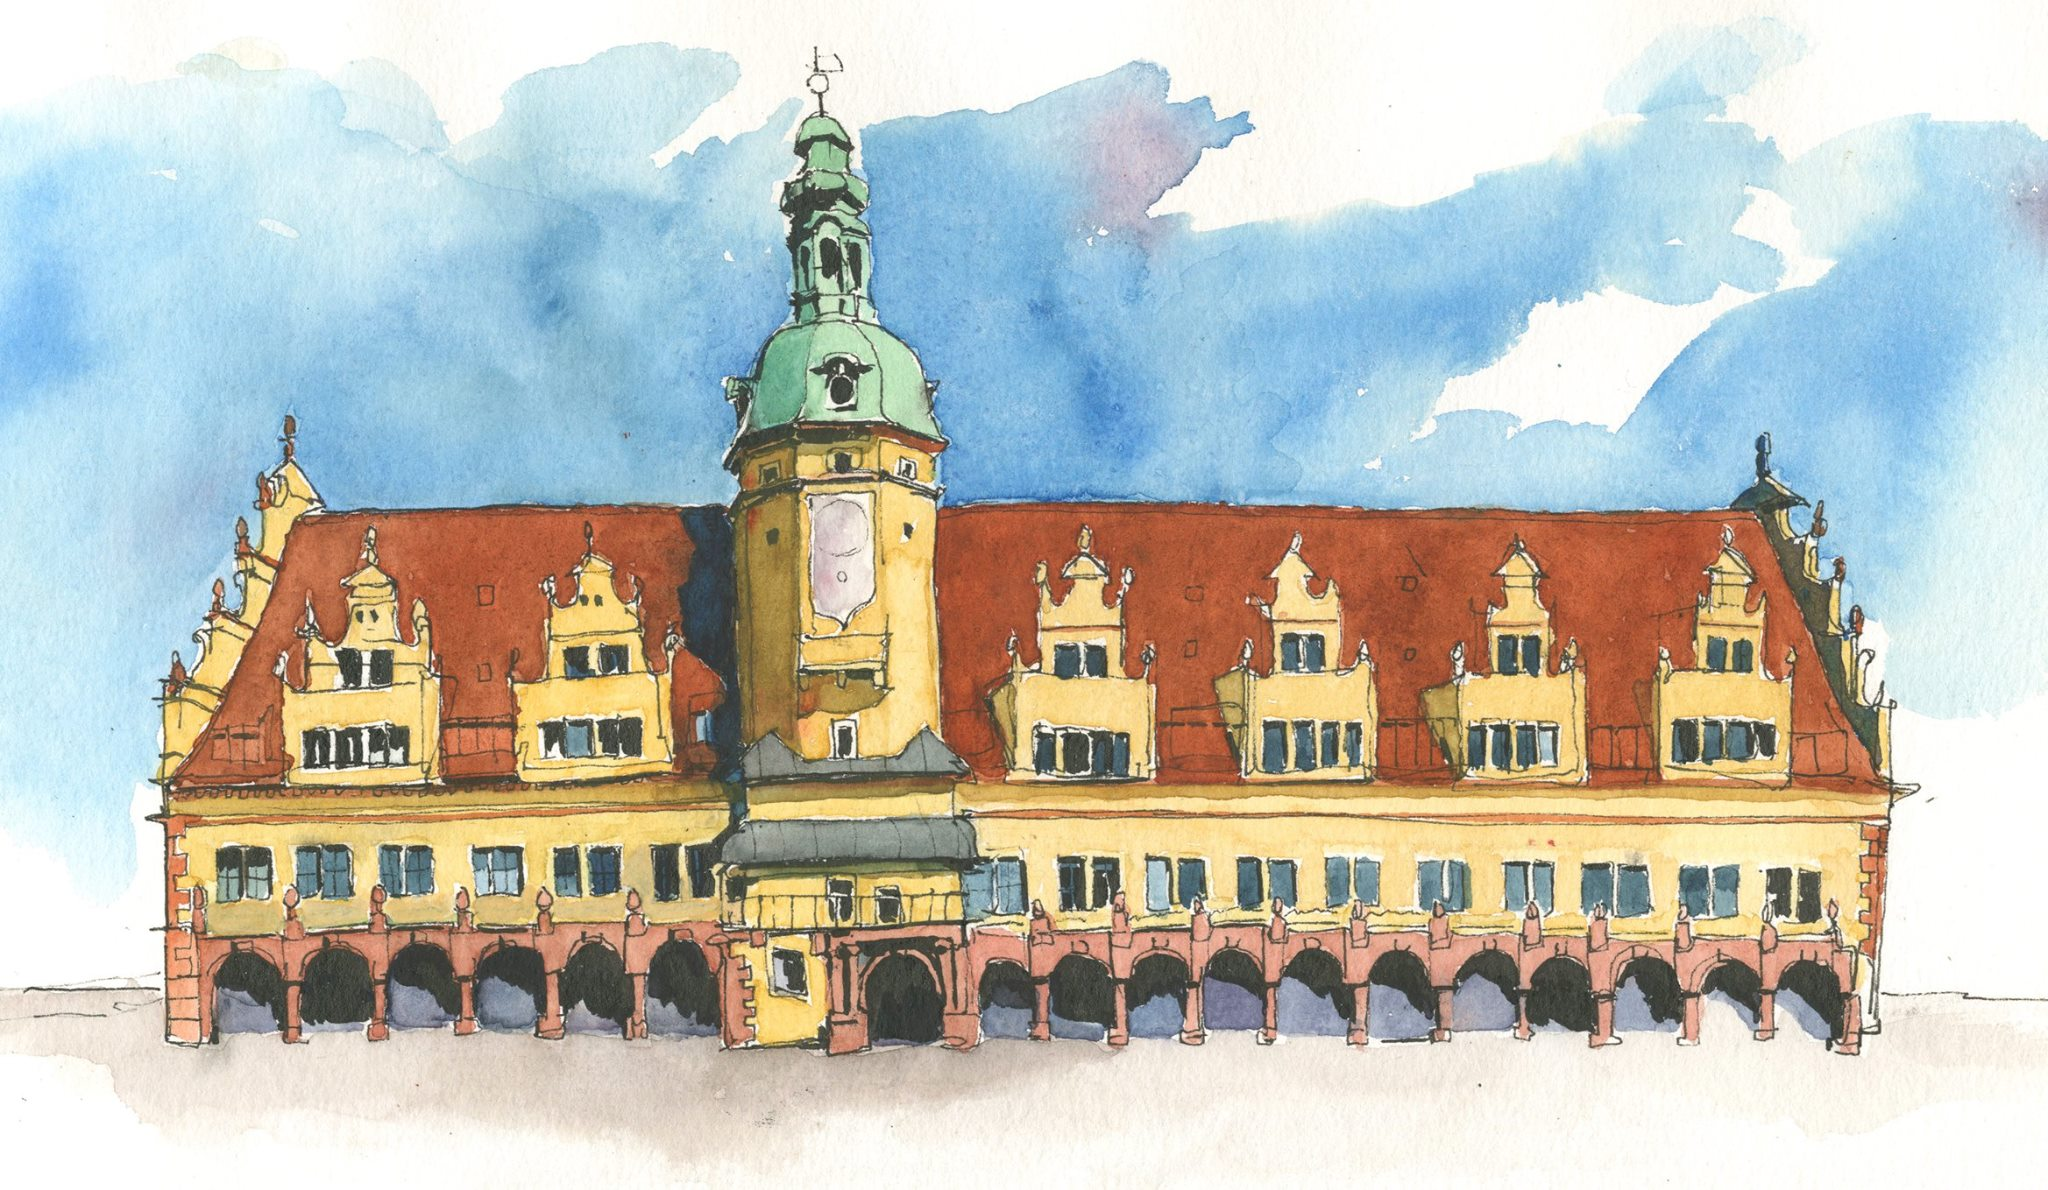 Leipzig's lovely Renaissance-era Altes Rathaus (Old Town Hall). It's a polychromatic sentinel overlooking the market square. I wish I'd done this one without an ink underdrawing, but hopefully it's not too obnoxious, and I like how the sky came out. I left out tons of detail (including the continuous band of text that runs around the whole thing), because if you keep it all it, the thing becomes way too busy. While I was drawing this in ink, a kind German man stopped by and showed me his journal in which we wrote in old-school dip pen (showed me the pen, too). I've found that drawing on the street is one of the best ways to meet locals; I had countless people stop by and chat. Hard for an introvert, but probably a good occurrence nonetheless.